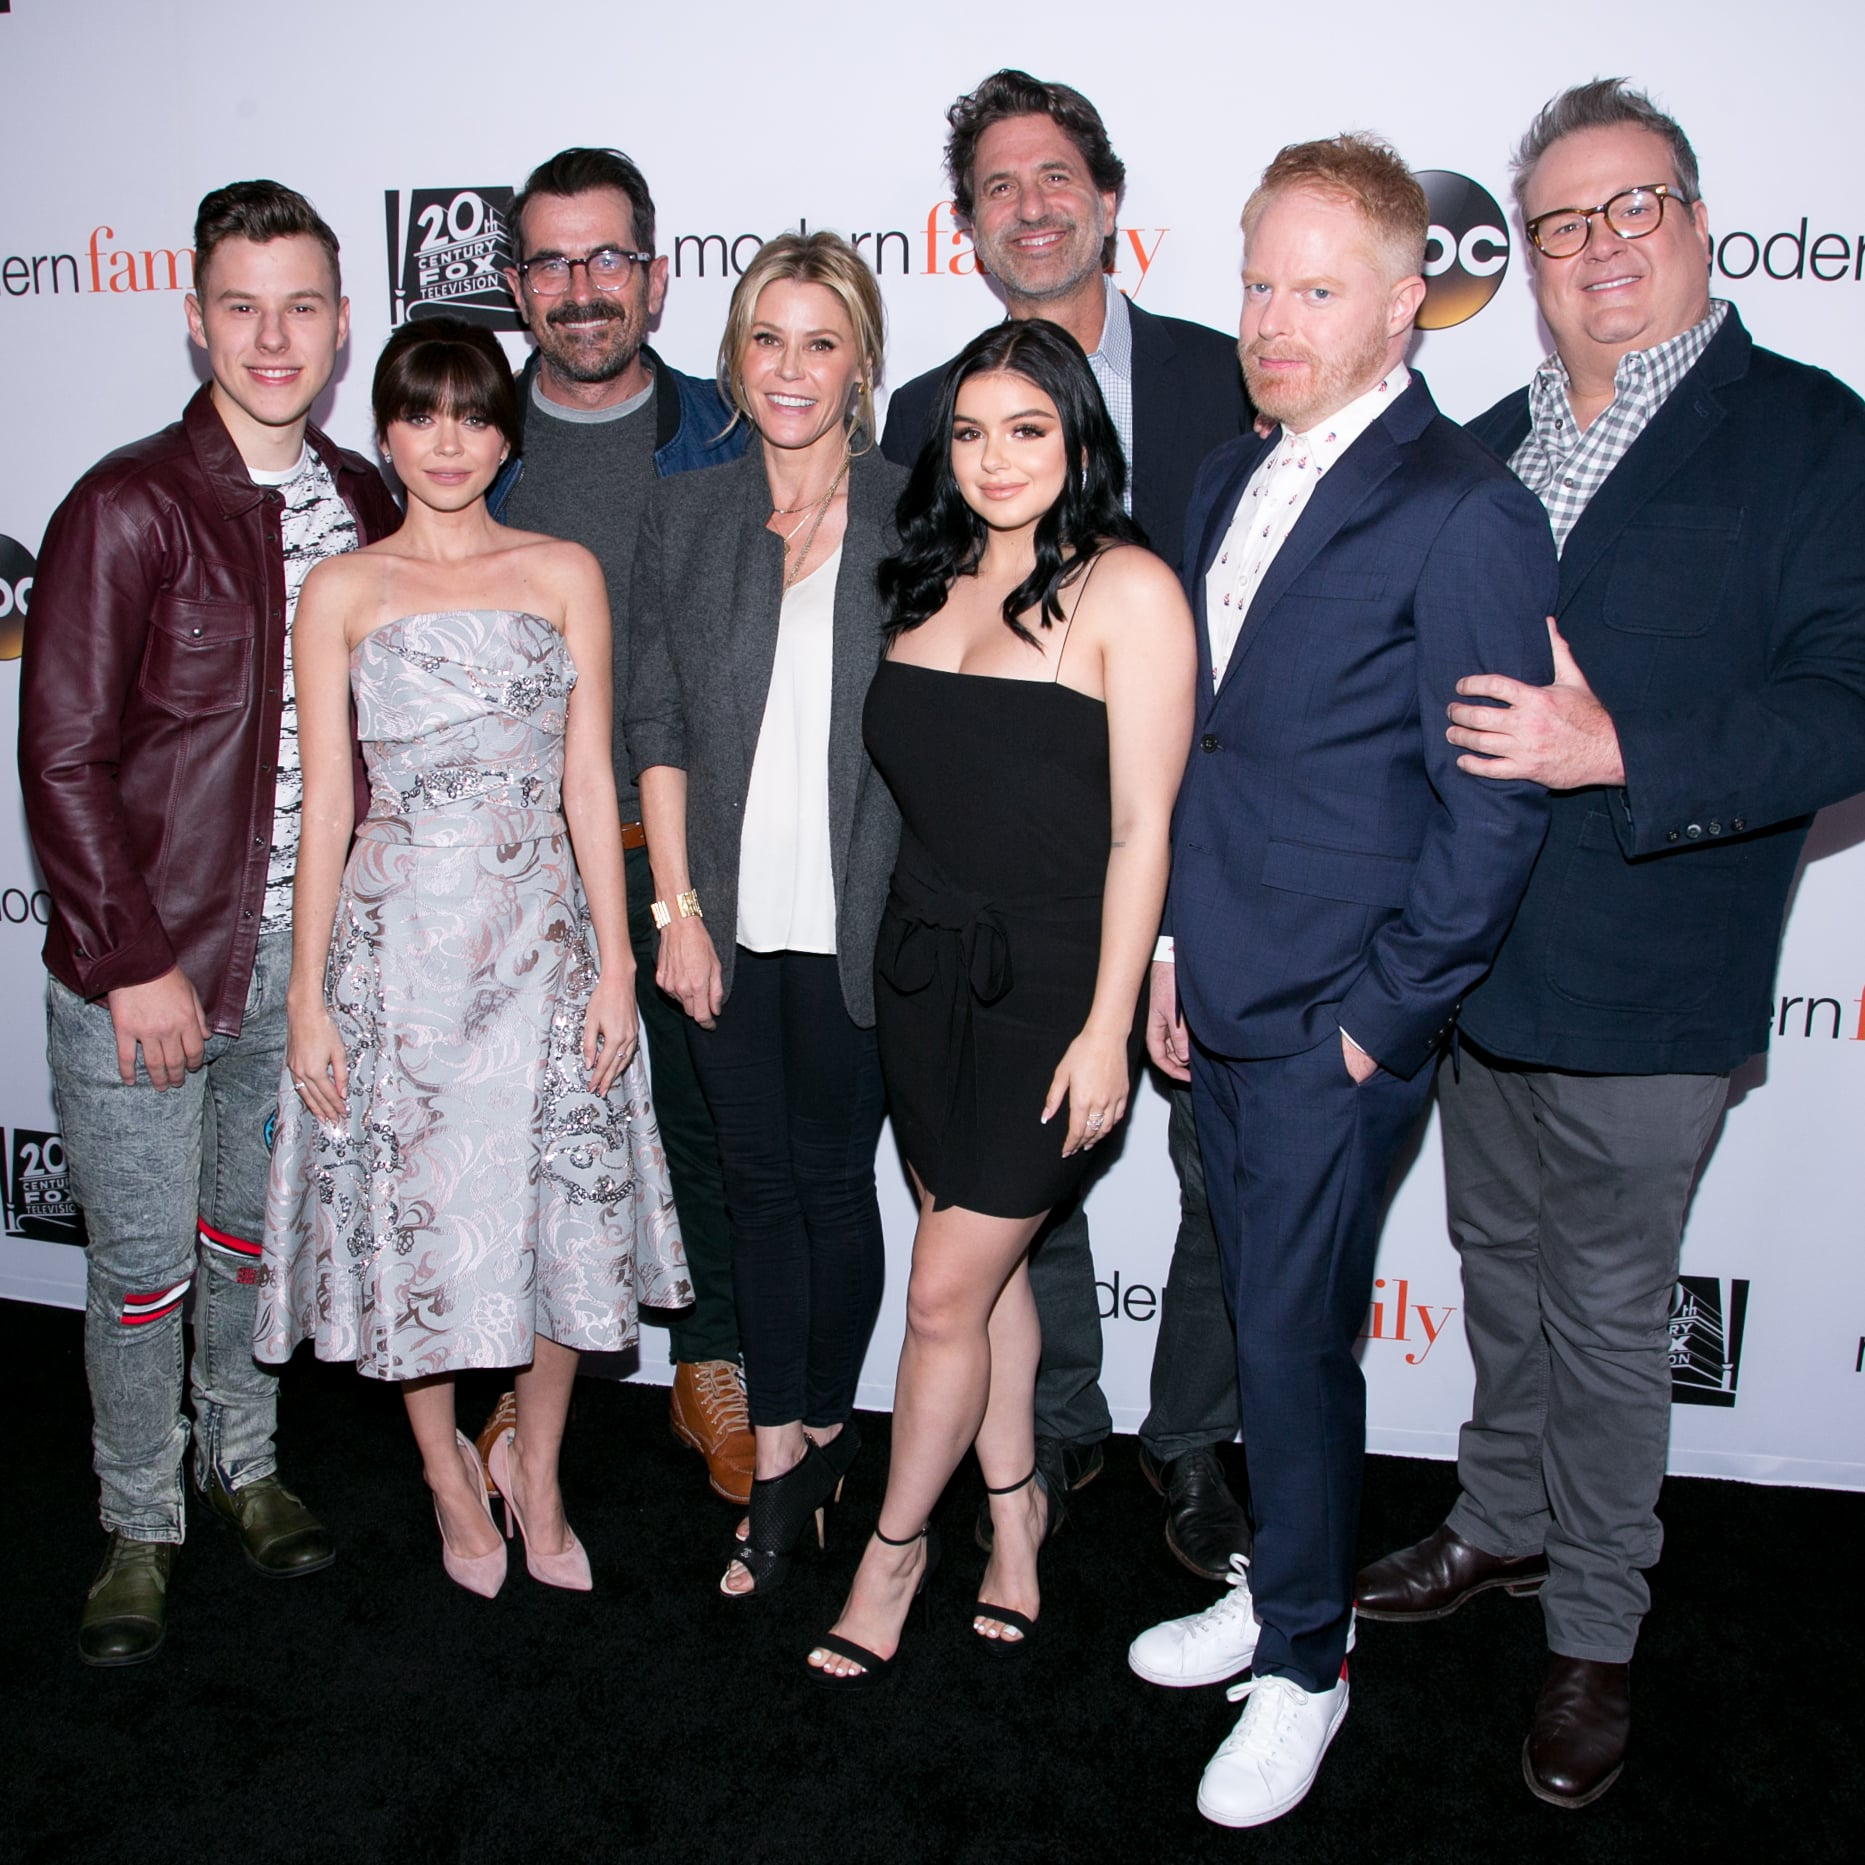 A Modern Family what is the modern family cast doing after the show ends